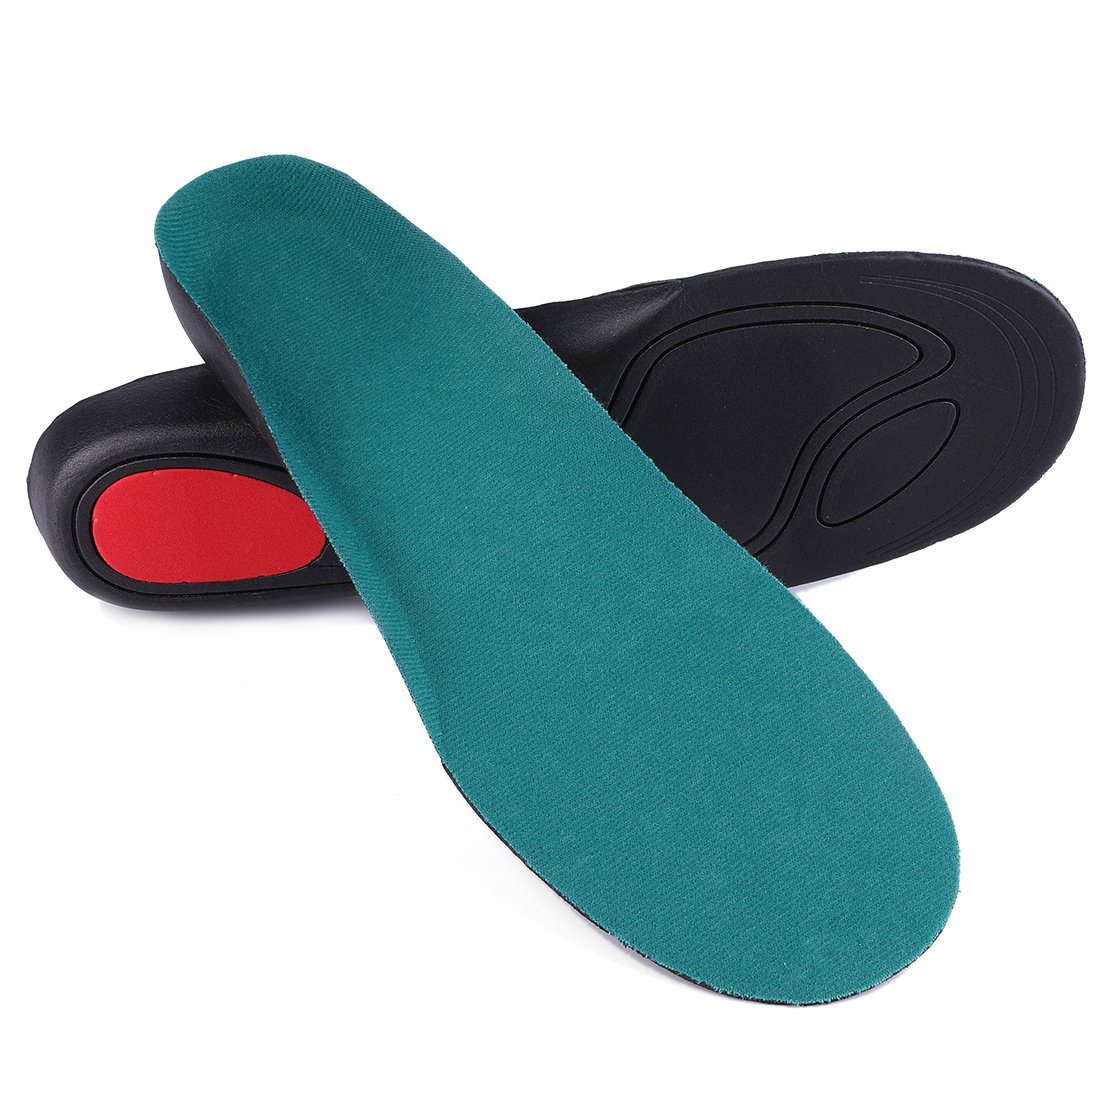 Orthotic Insoles for Women Men Arch Support Full Length Insert W7/M5 Turquoise